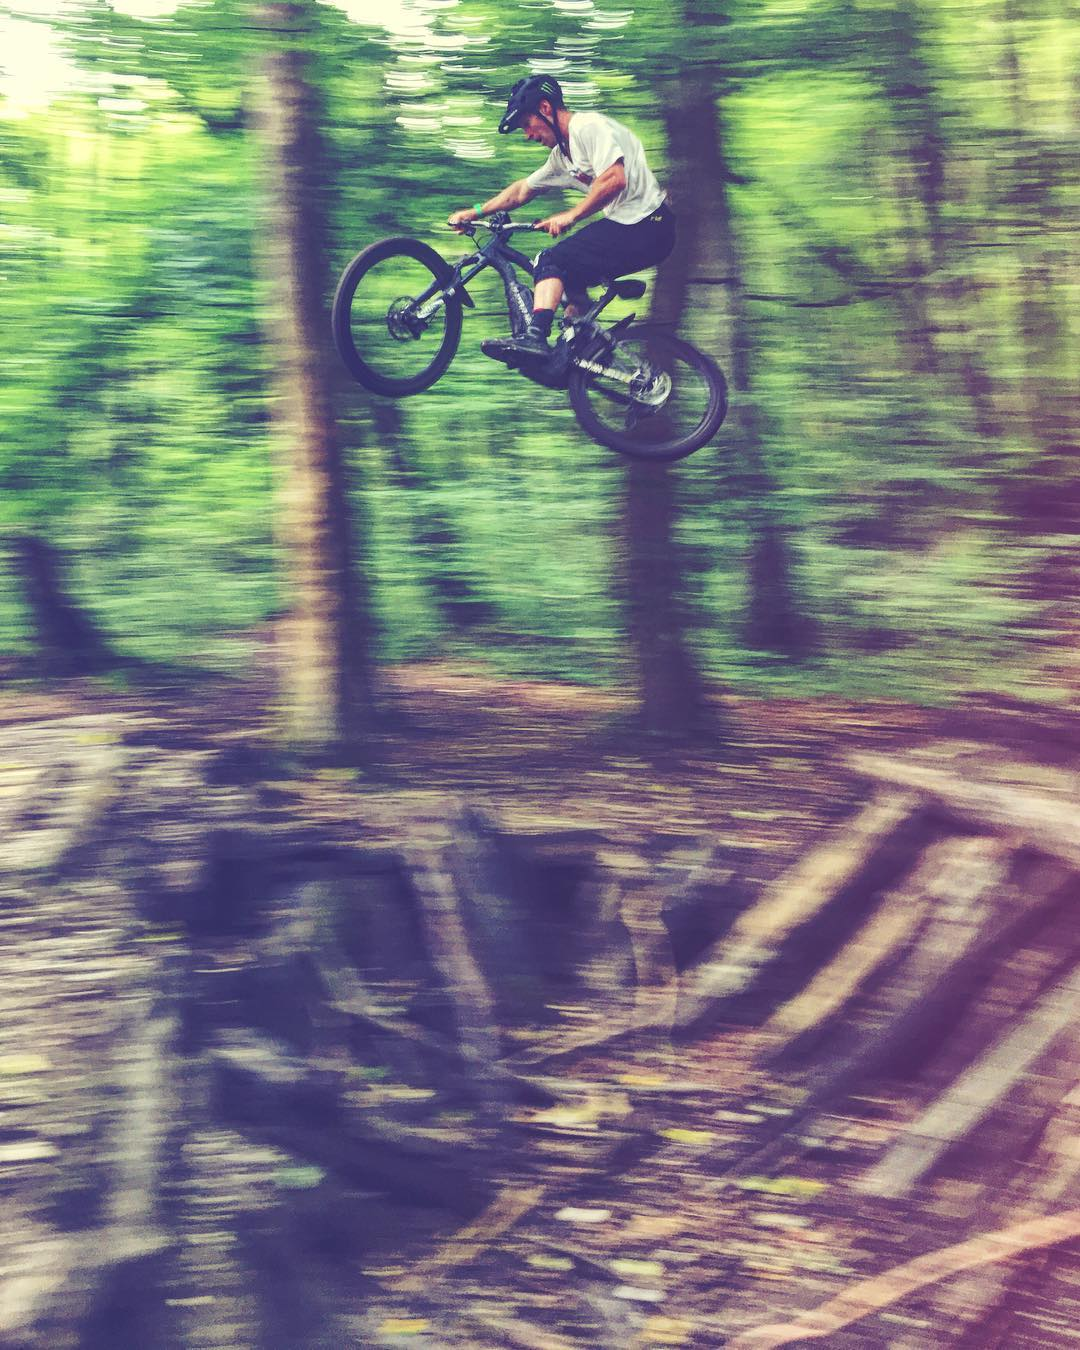 So stoked to have @sampilgrim signed to @haibike_official ! Here is an iPhone shot from a first ride we did with him back in the summer in Munich. Can't wait to ride, shoot and get his feedback to further develop the bikes over the next  couple of years. #eMTB #enduro #haibike #mtb